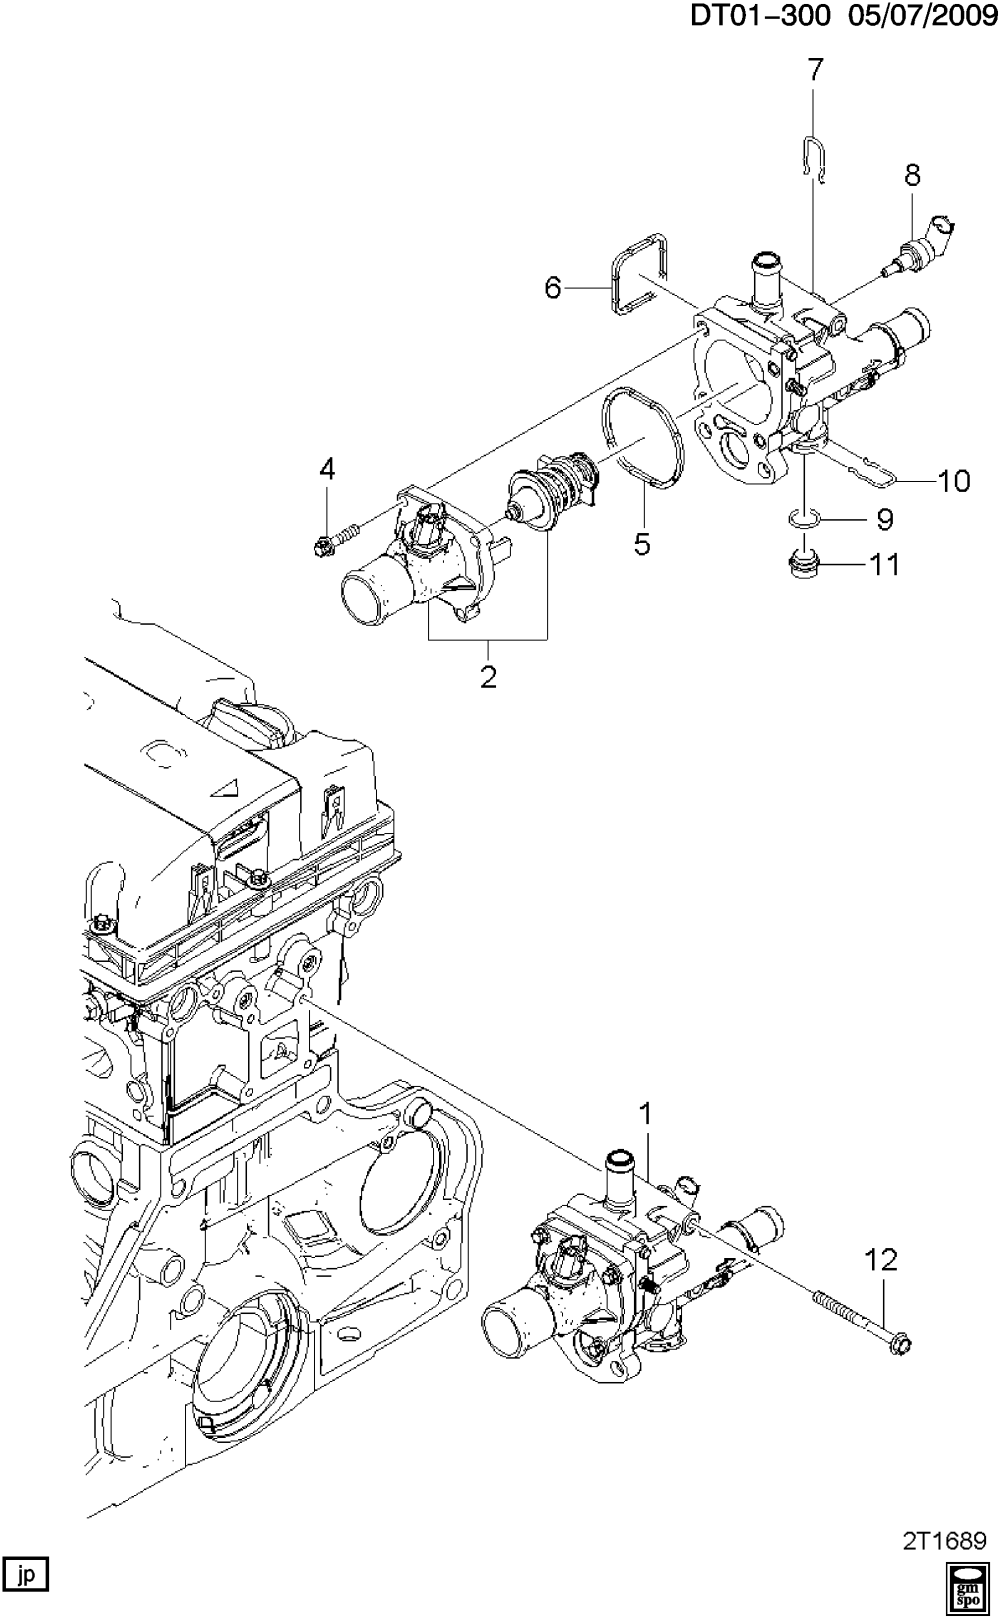 medium resolution of 2011 chevy aveo engine diagram wiring diagram expert aveo engine diagram for 2009